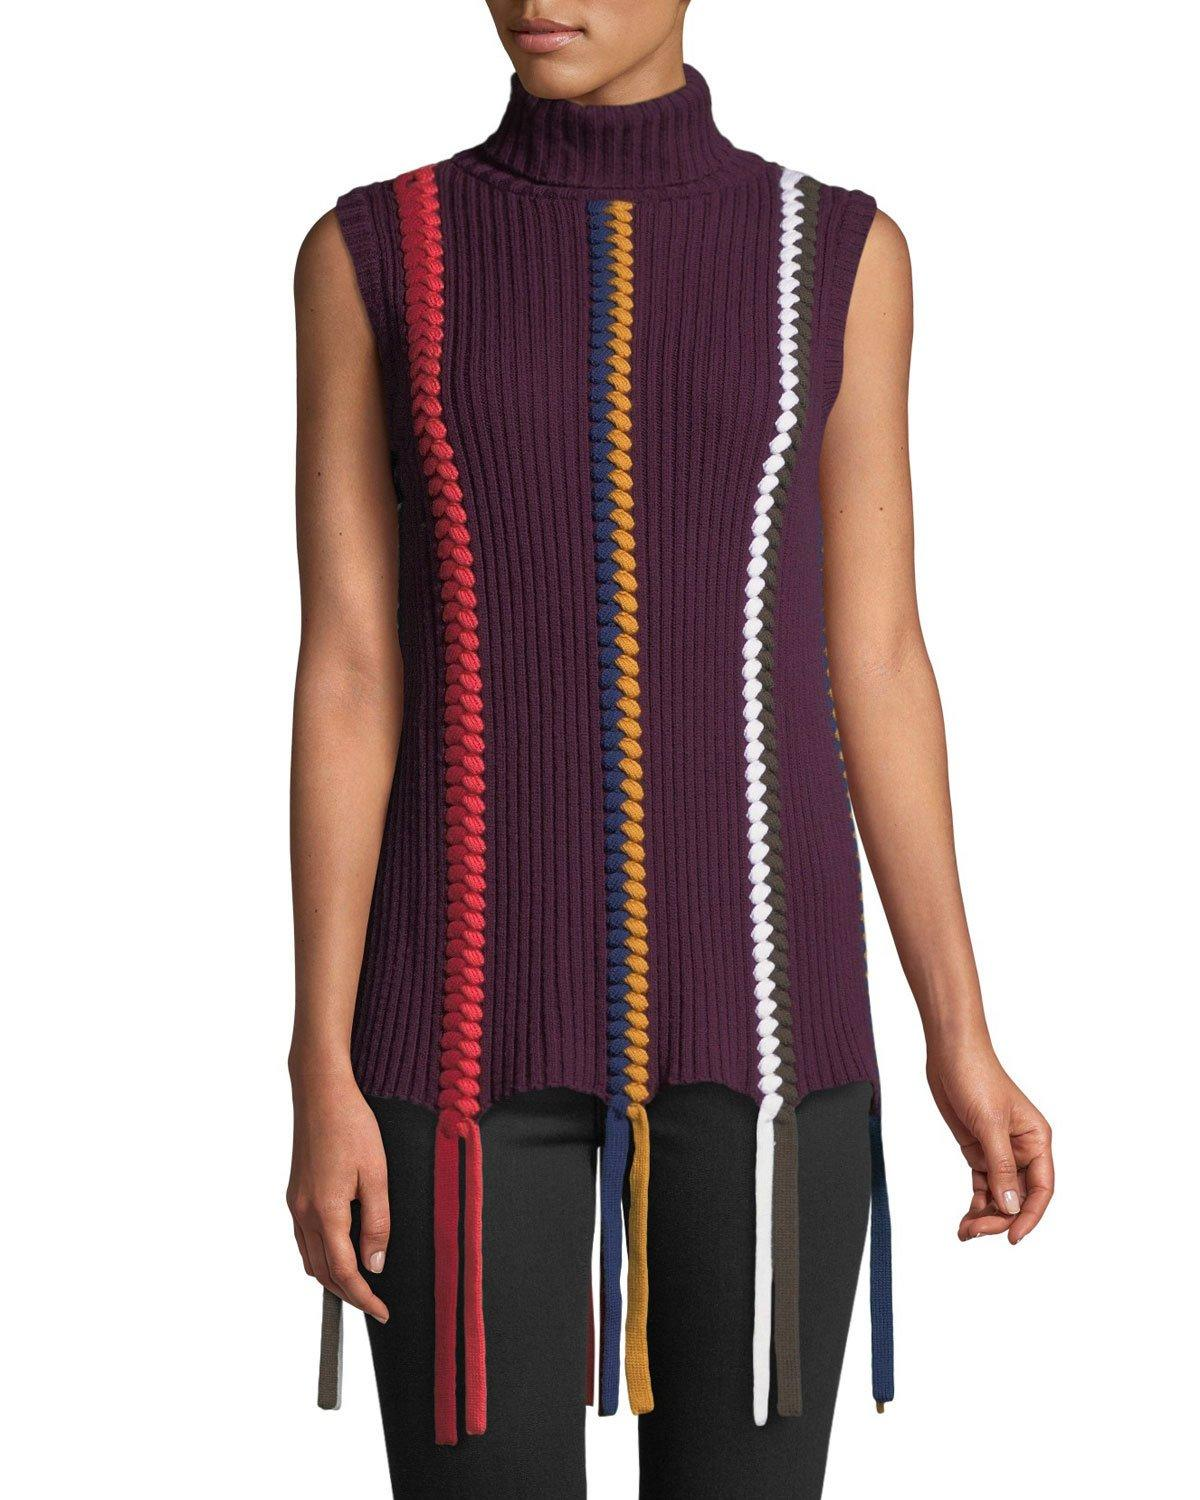 ef893885a4d9bc Derek Lam 10 Crosby Sleeveless Turtleneck Sweater With Braided Details In  Multicolour